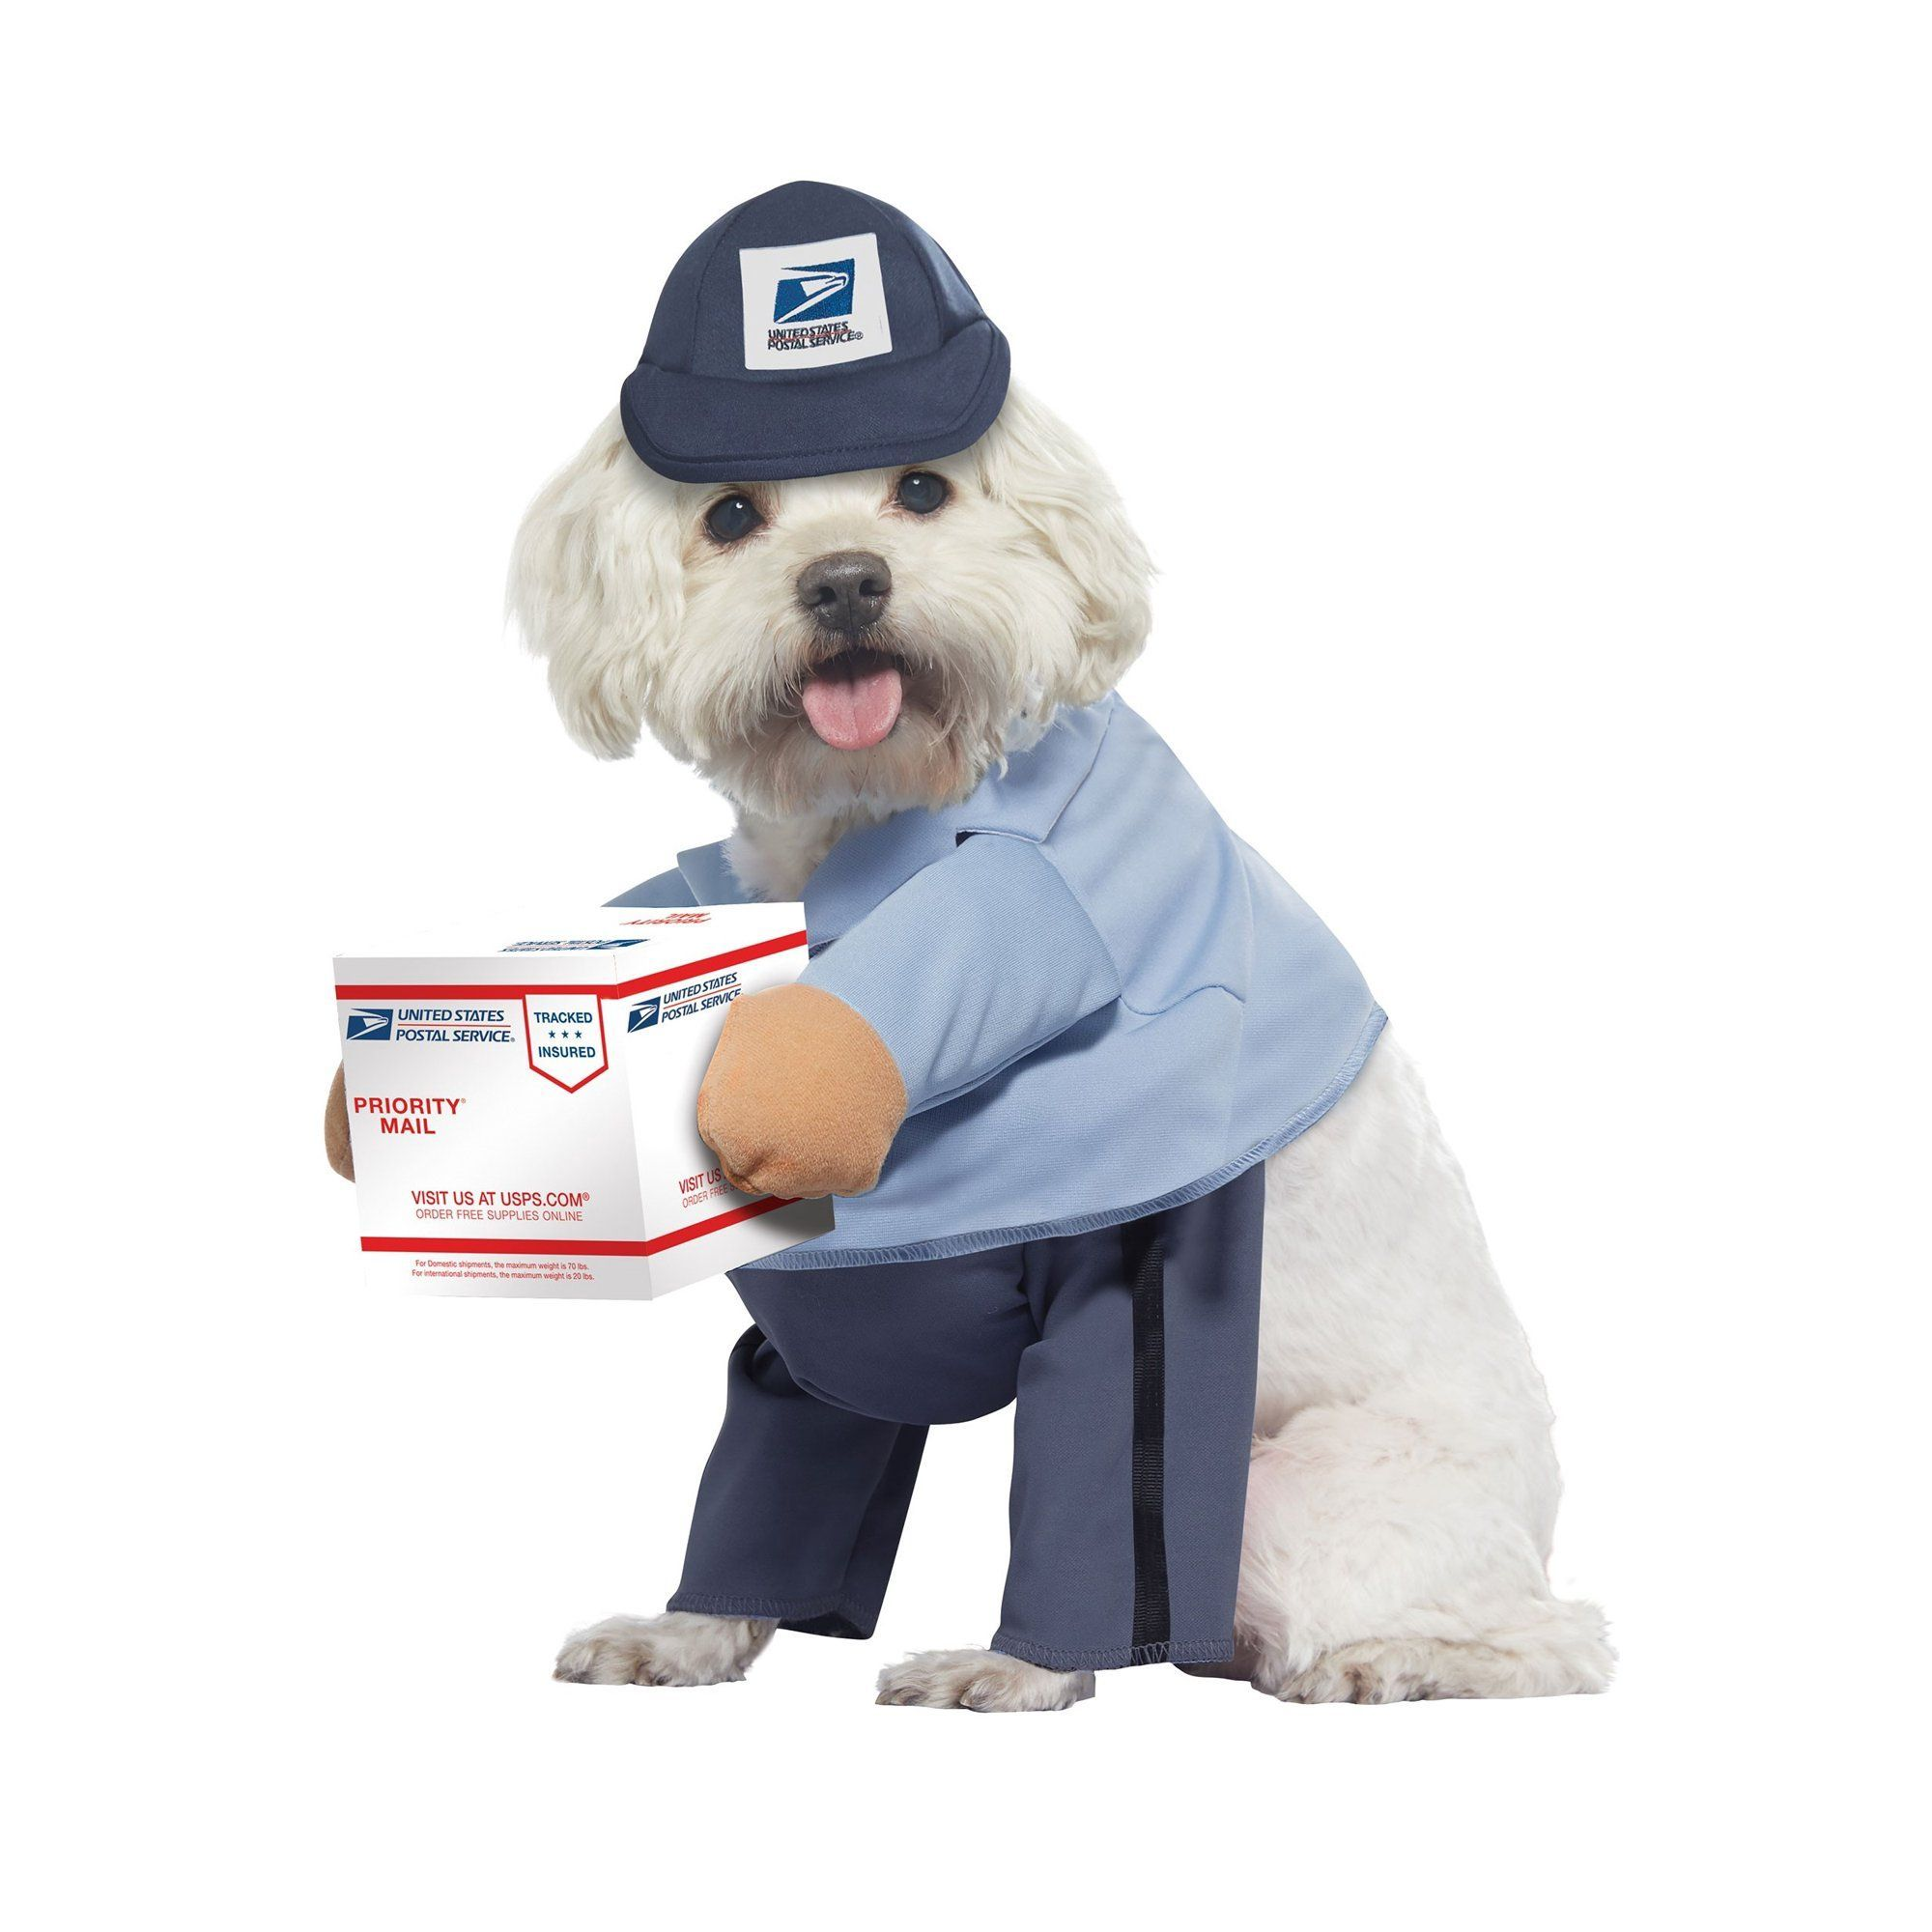 There are some traditional games like bobbing for apples and smashing a piñata that can easily. 50 Best Dog Halloween Costumes 2021 Funny Cute Dog Costume Ideas